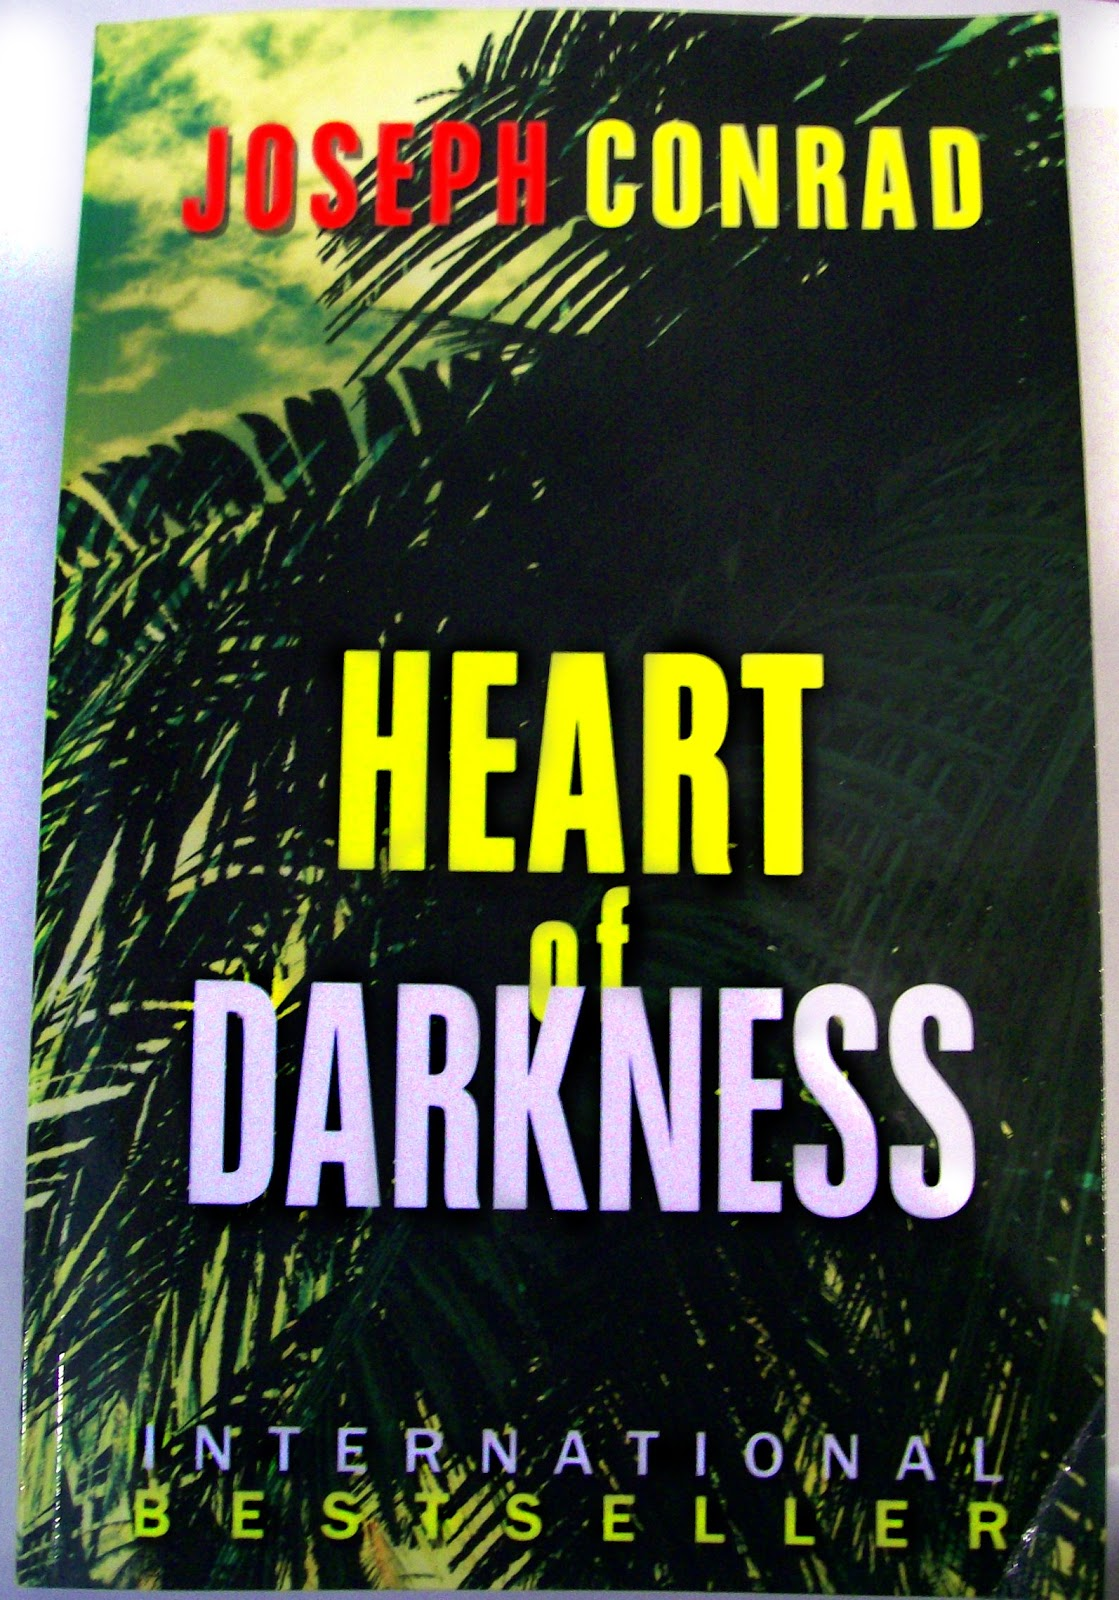 heart of darkness by joseph conrad In heart of darkness, every person and everything mean more than what we find on a superficial level a symbol is used to imply a hidden meaning behind the surface.